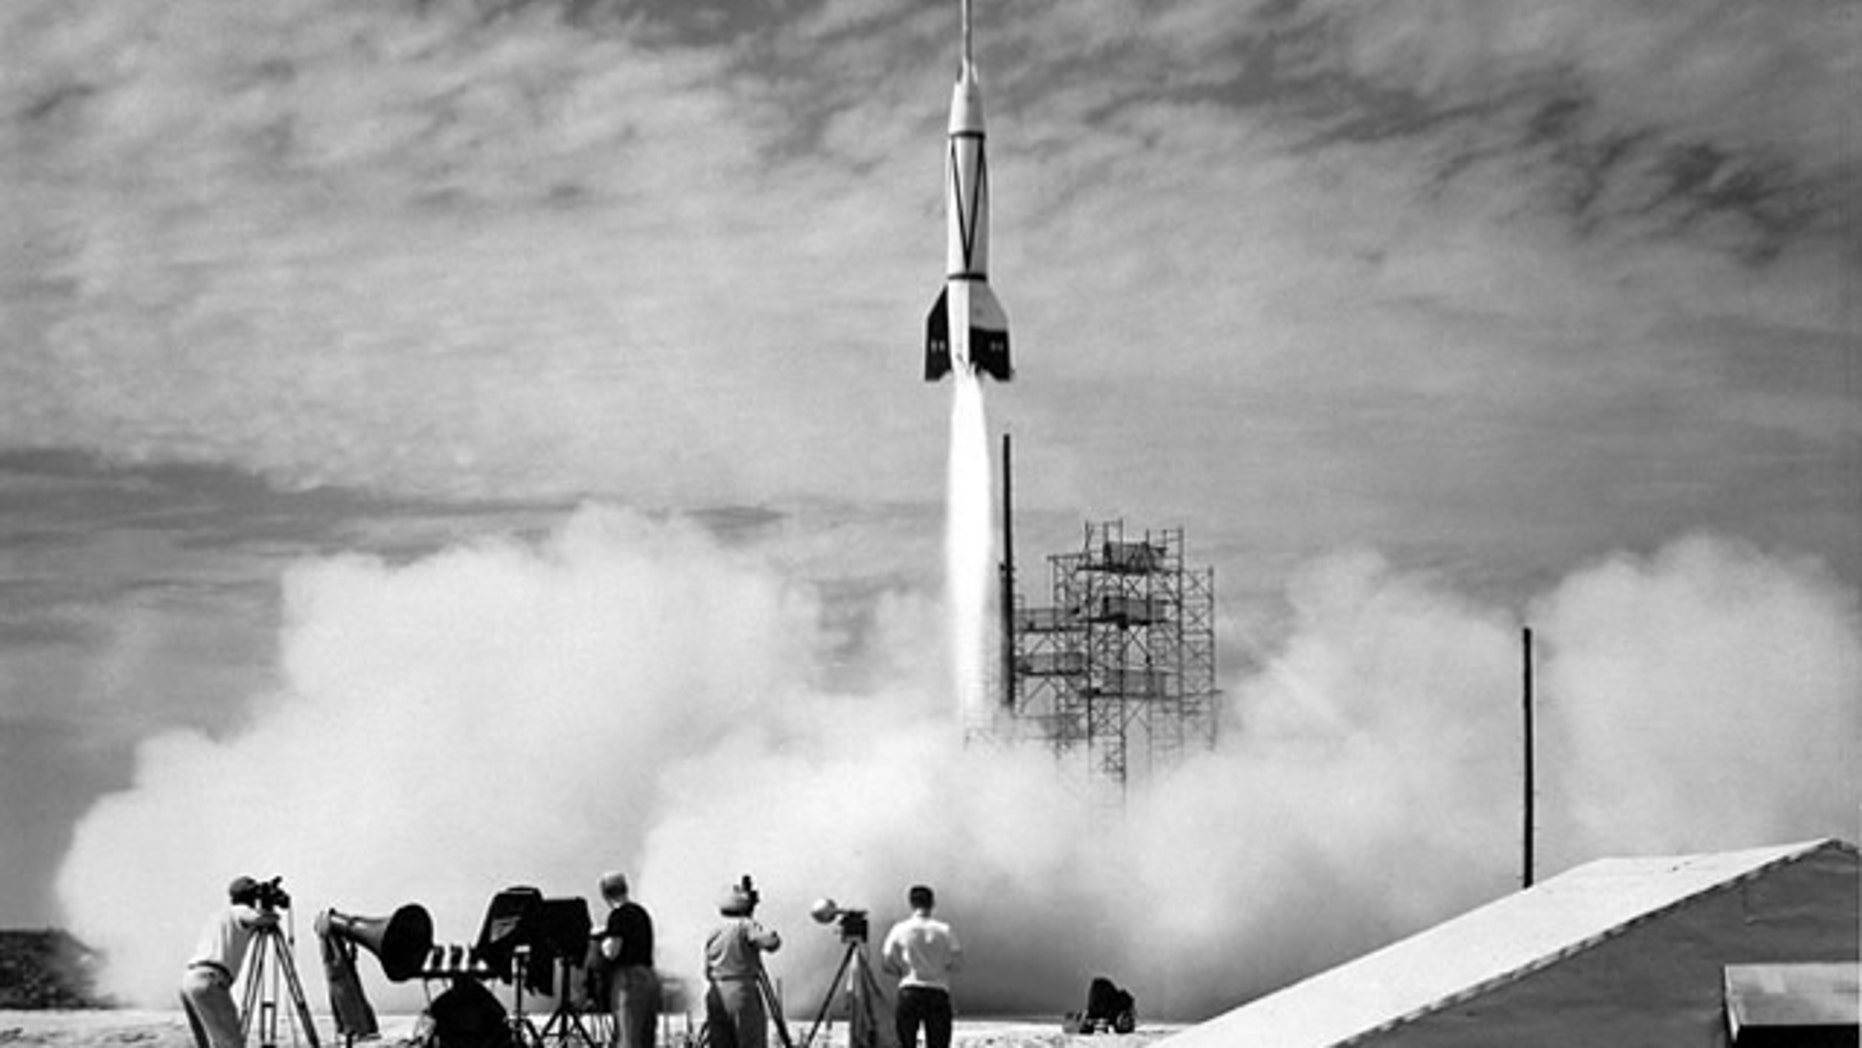 Bumper 8 lifts off on July 24, 1950 from the Long Range Proving Grounds in Cape Canaveral, Florida.